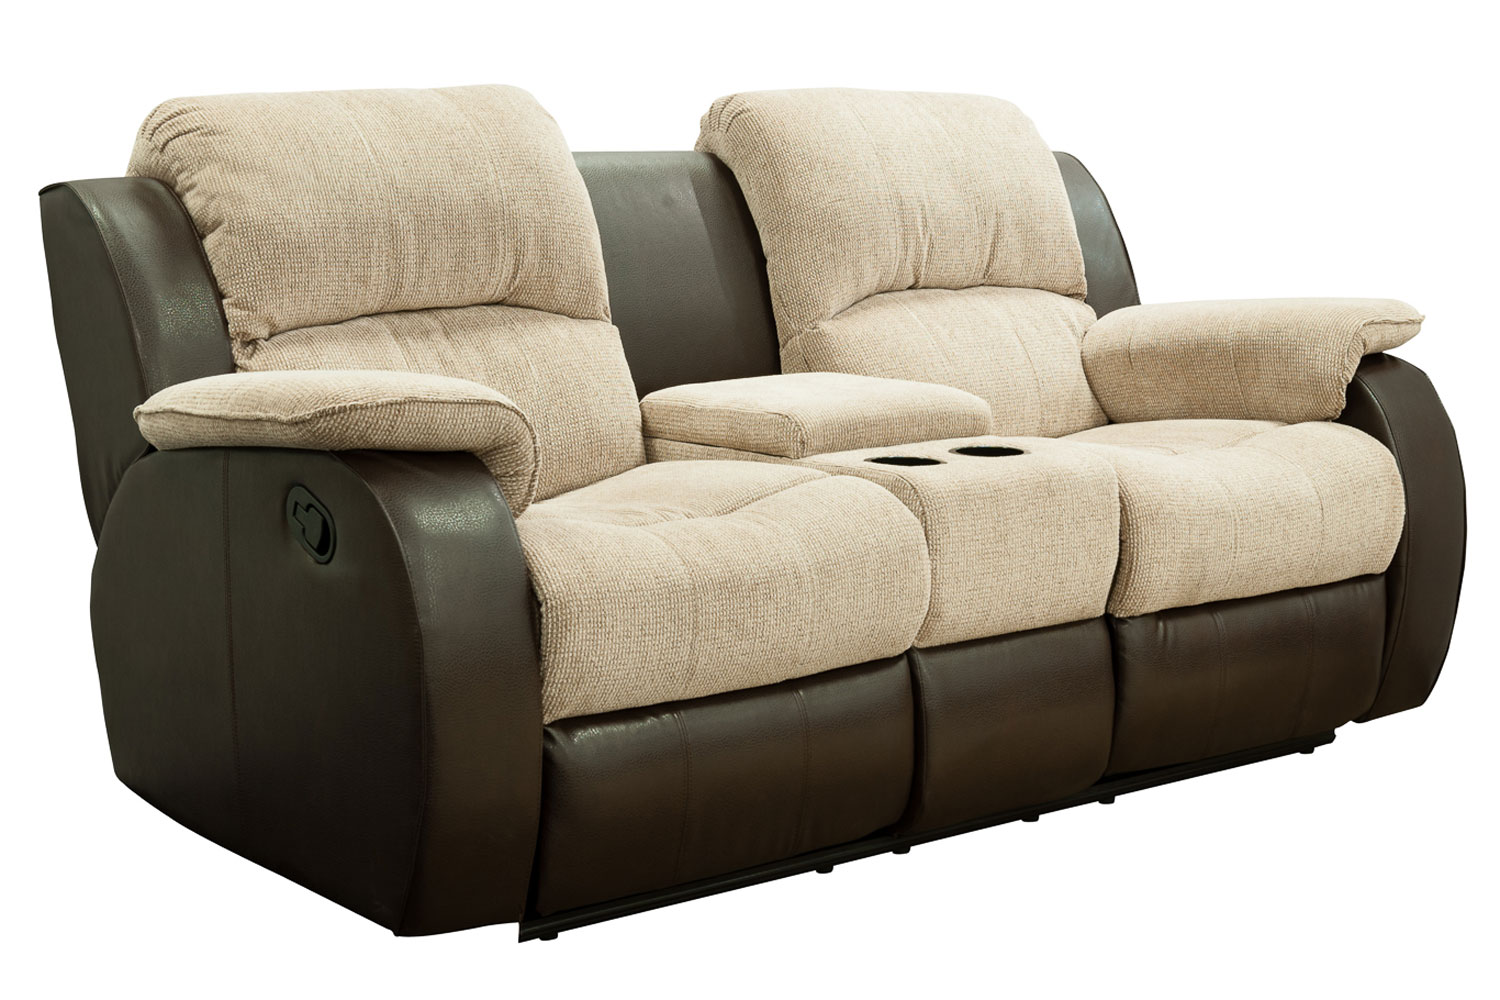 Kayde Console Recliner Sofa Ireland : Kayde Console angle from www.harveynorman.ie size 1500 x 1000 jpeg 217kB